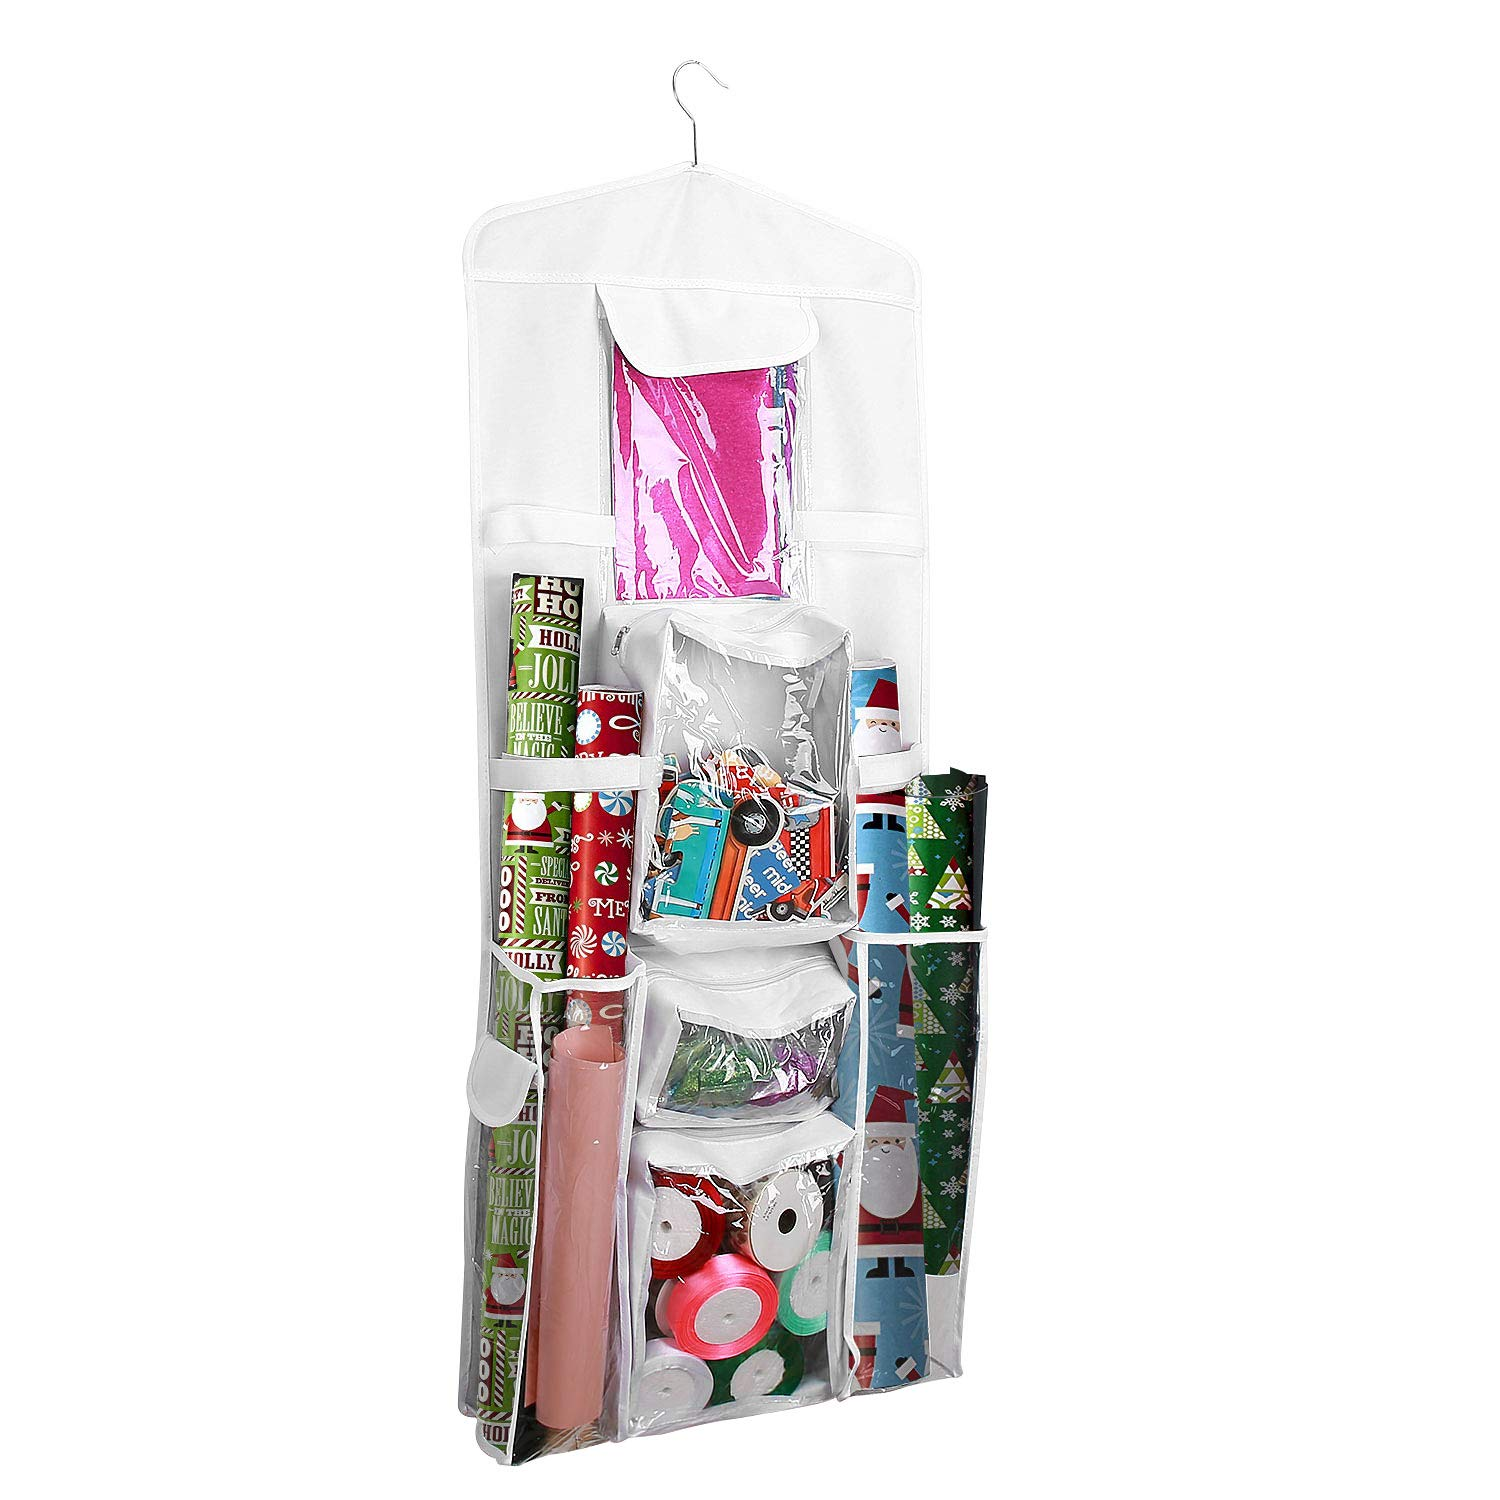 ProCase Gift Wrap Organizer, Double-Sided Hanging Gift Bag Wrapping Paper Holder with Multiple Clear Pockets and 360 Degree Swivel Hook for All Your Gift Wrapping Accessories -White by ProCase